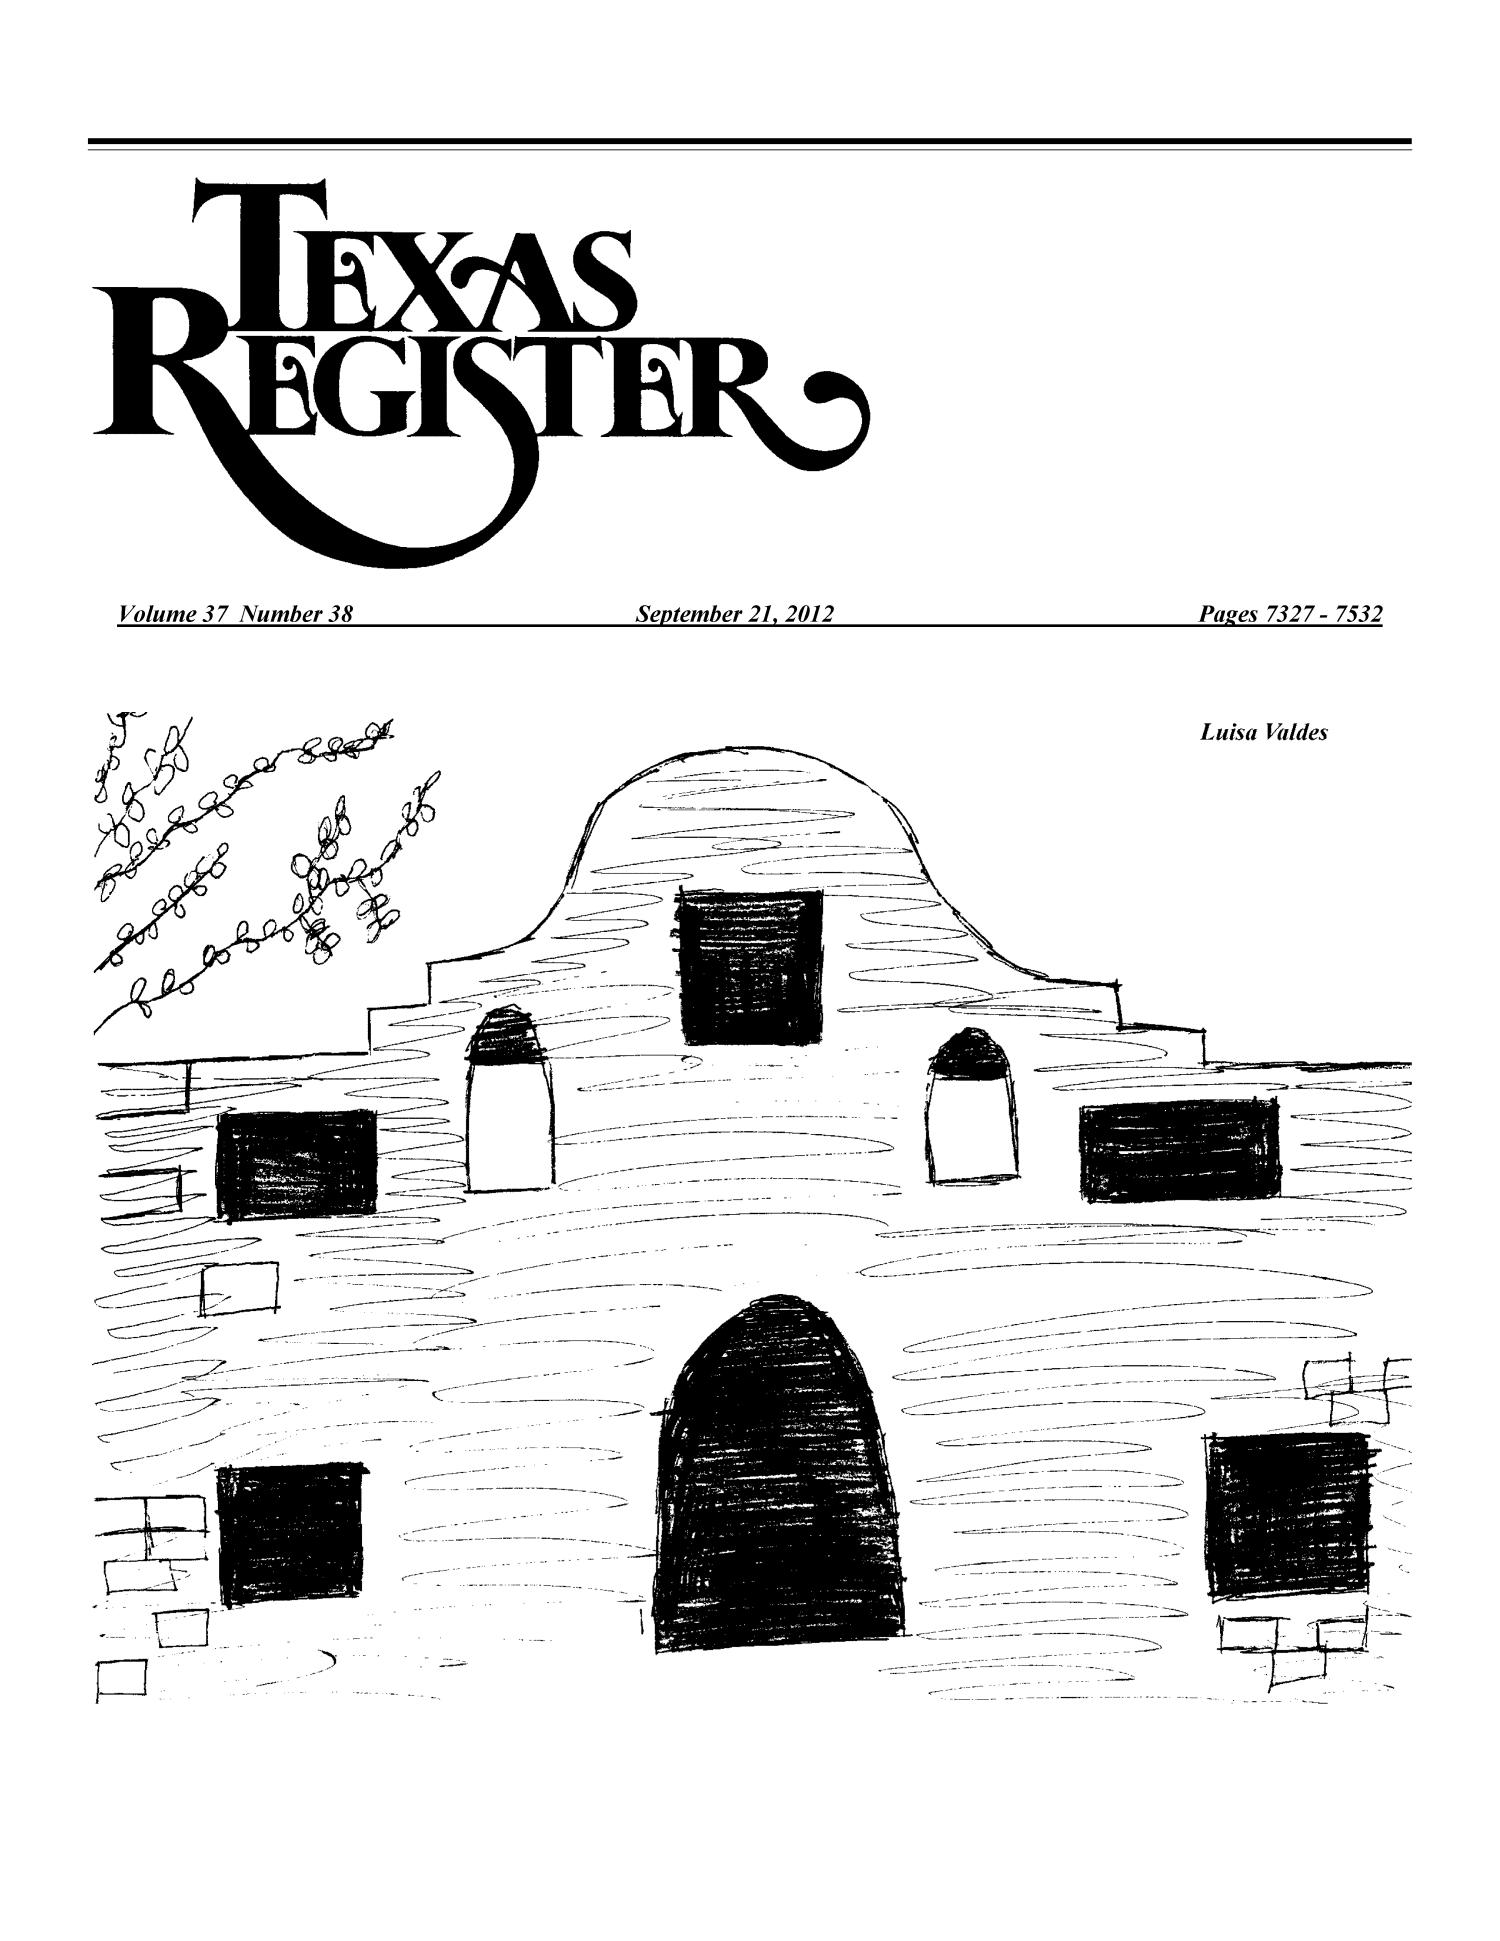 Texas Register, Volume 37, Number 38, Pages 7327-7532, September 21, 2012                                                                                                      Title Page